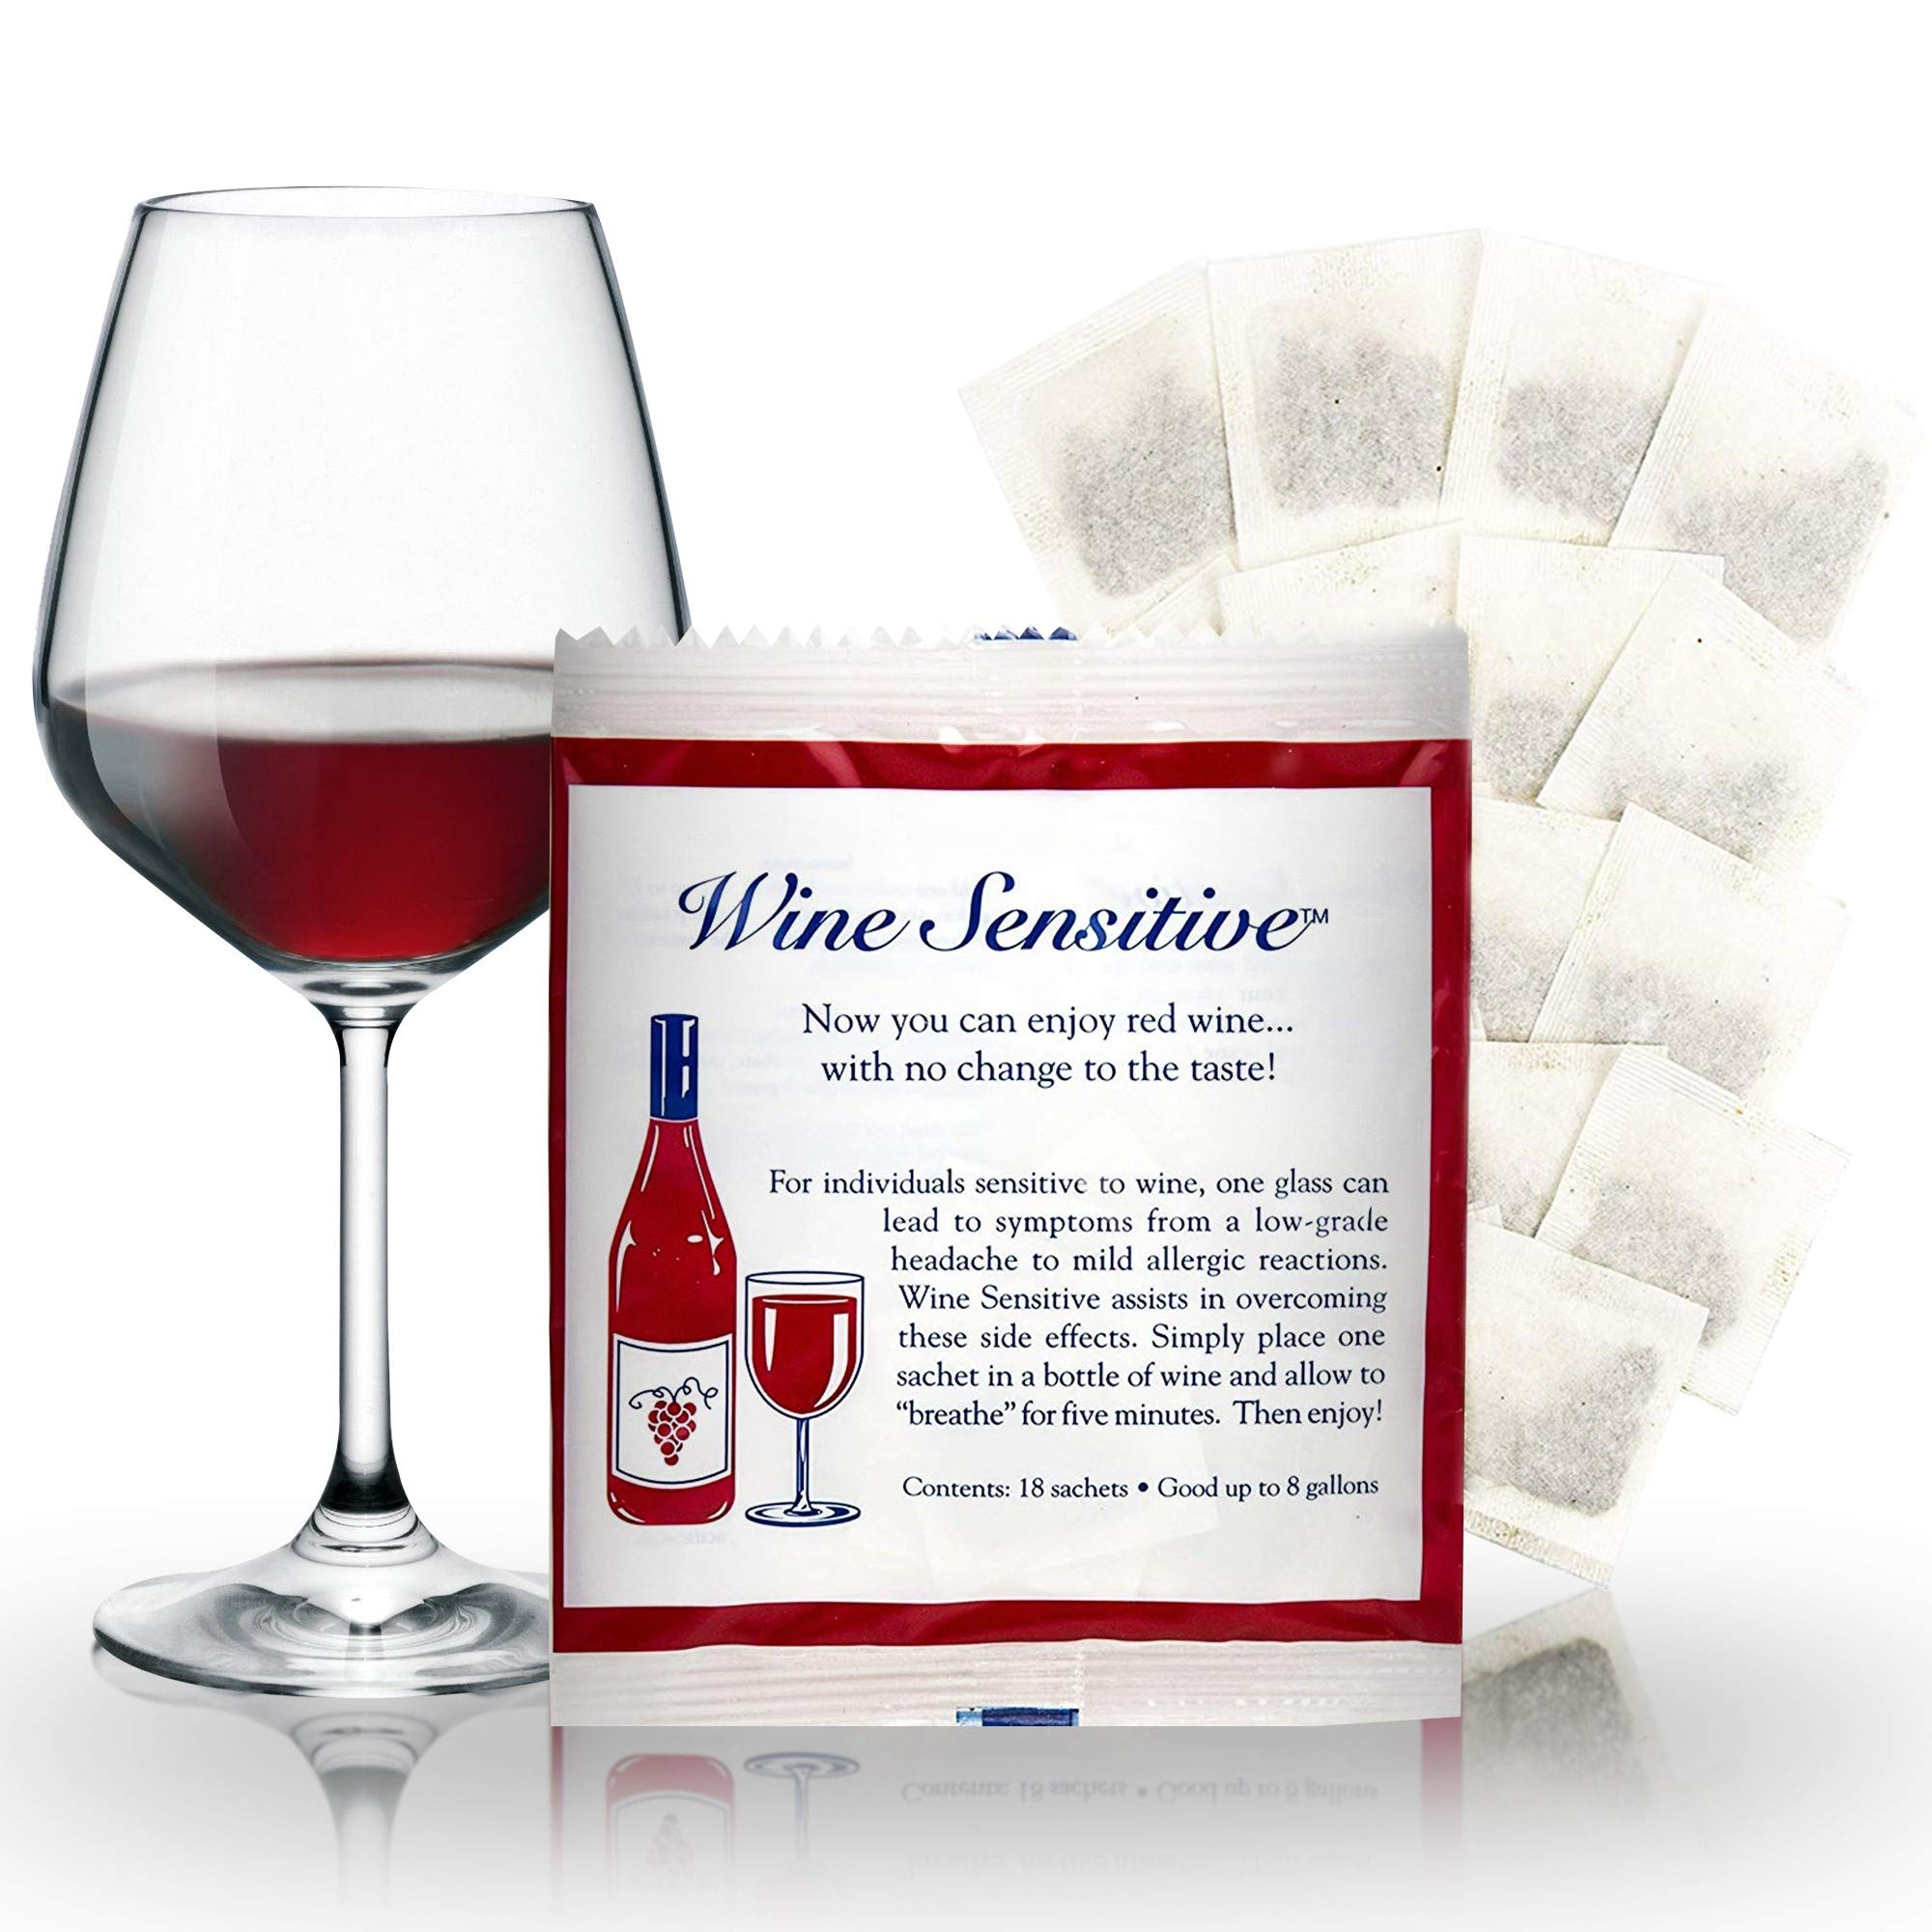 Organic Wine Sulfite Remover Filter Sachets with All Natural Ingredients For Allergy Sensitivity Hangover Prevention Remedies & Wine Filters Stops Red Wine Headaches Nausea IBS by Wine Sensitive